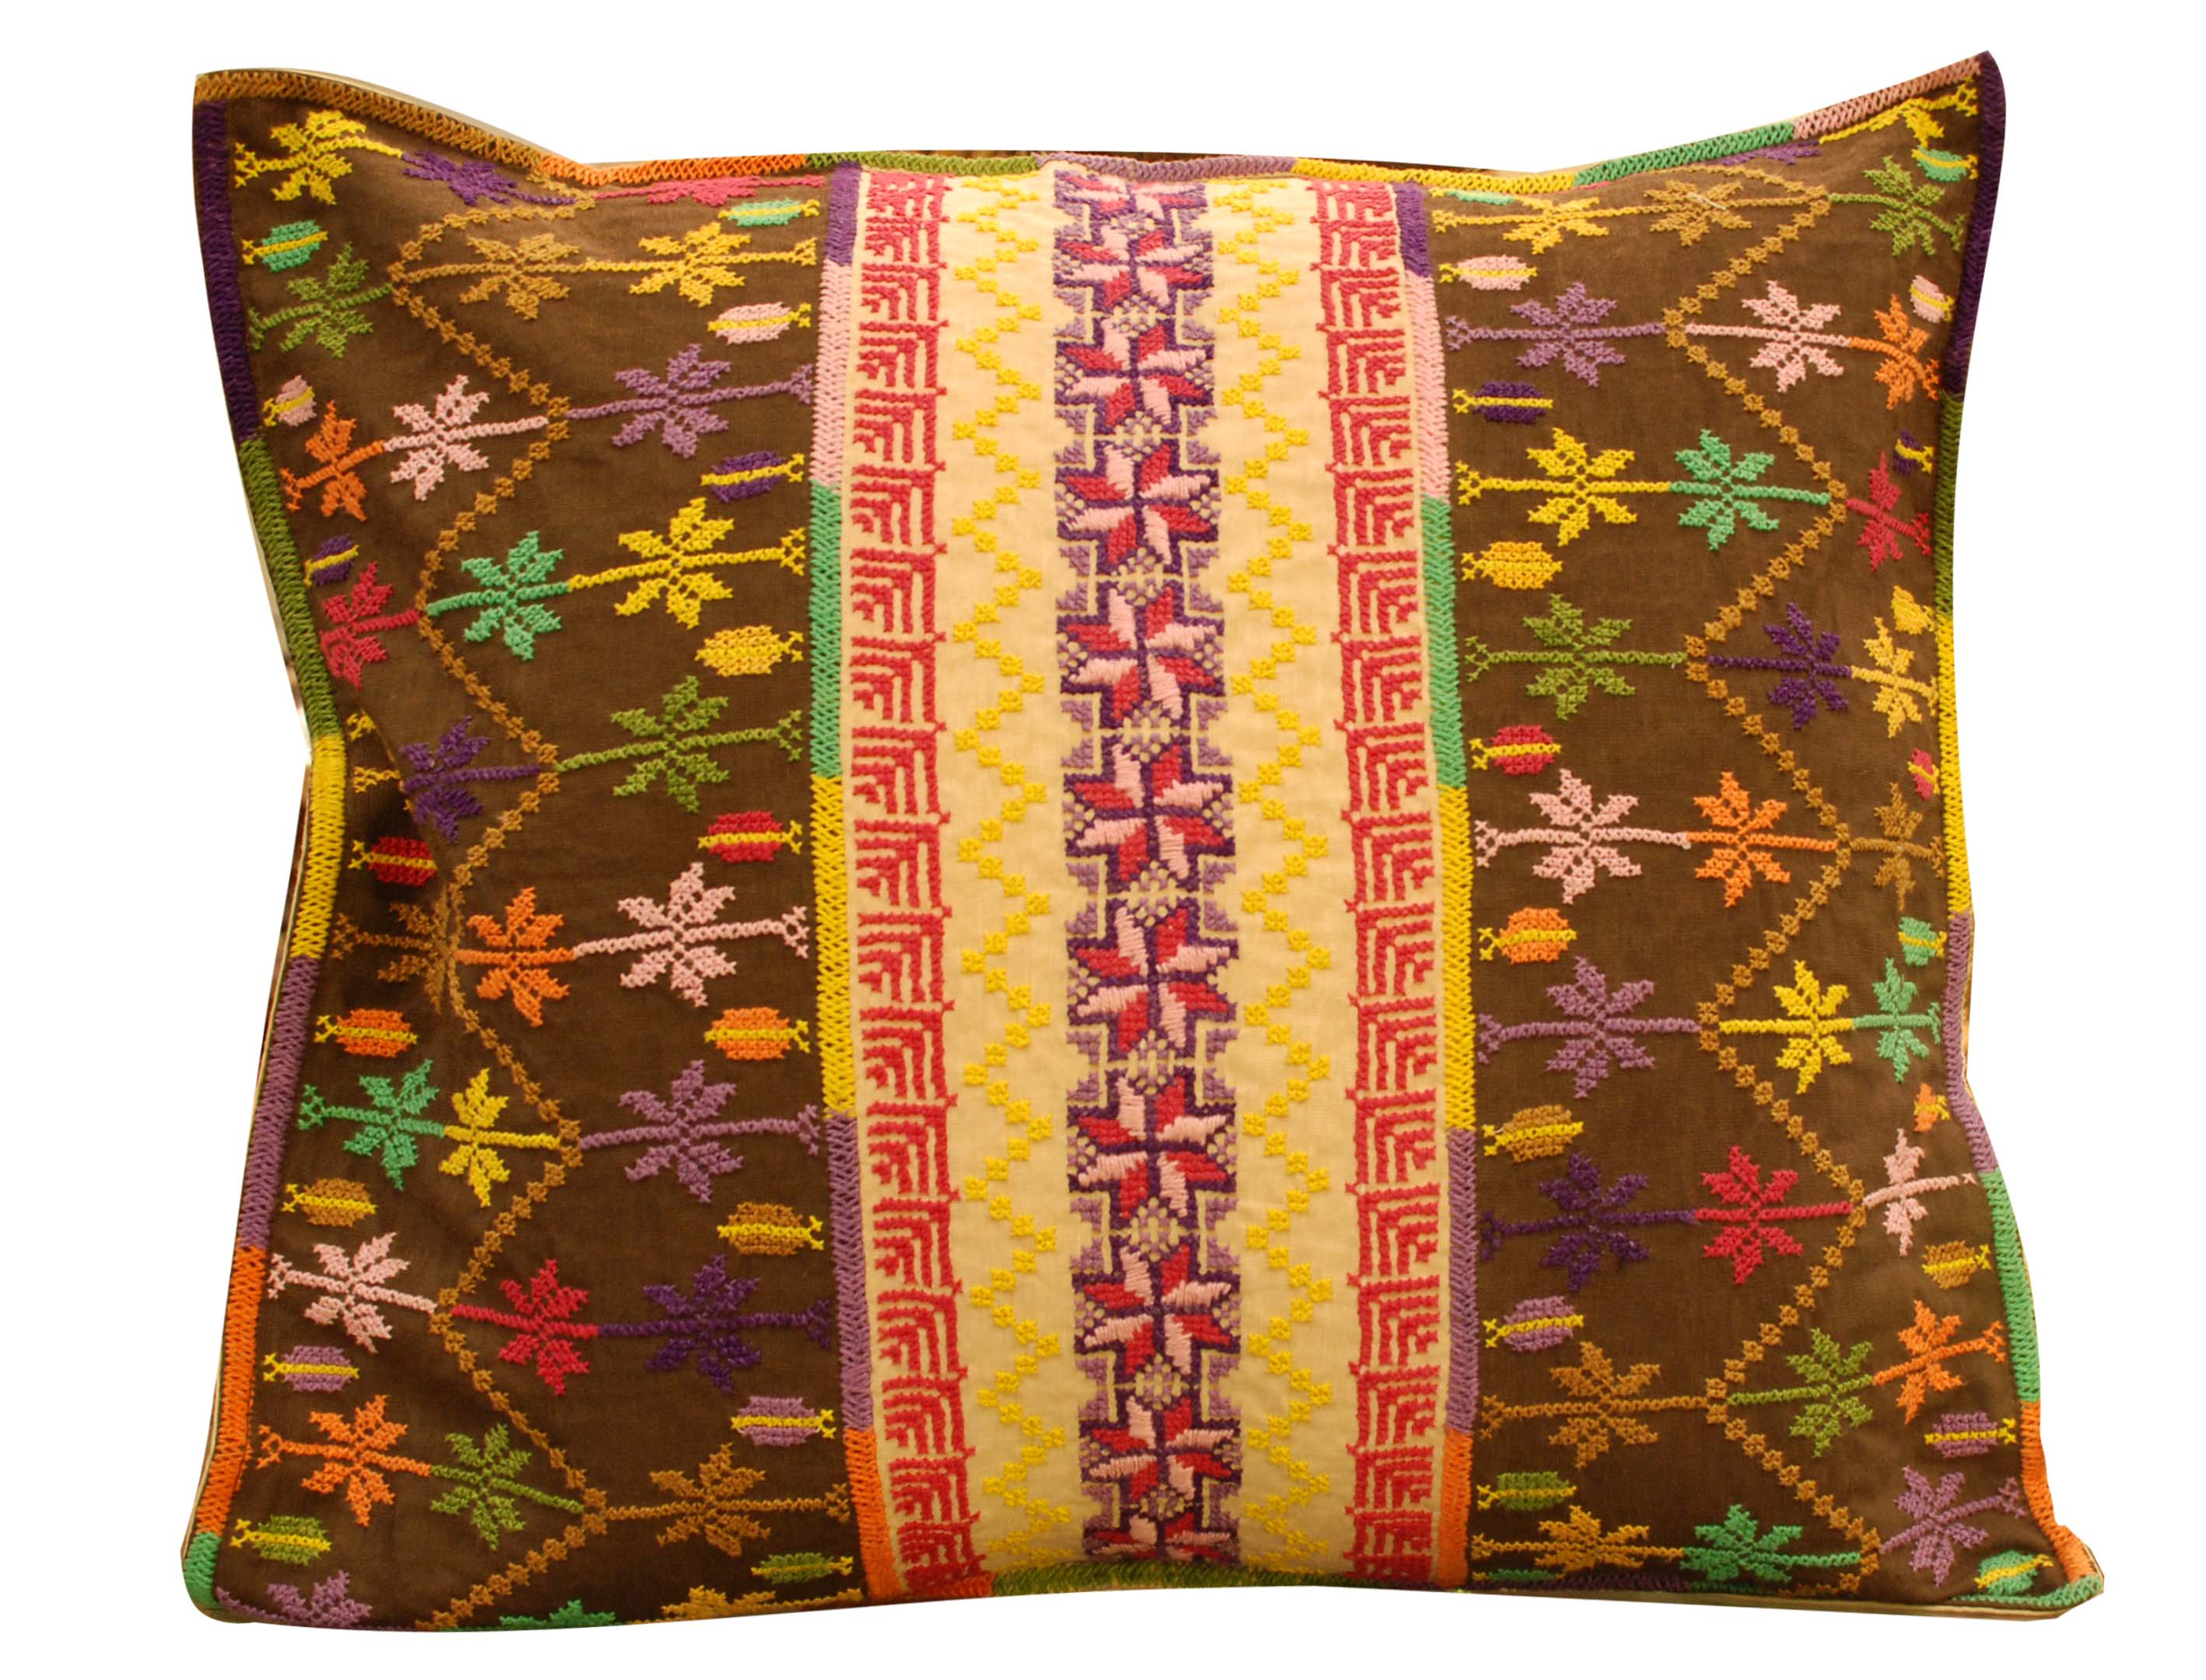 ornina handmade ocu5 needle work cushion